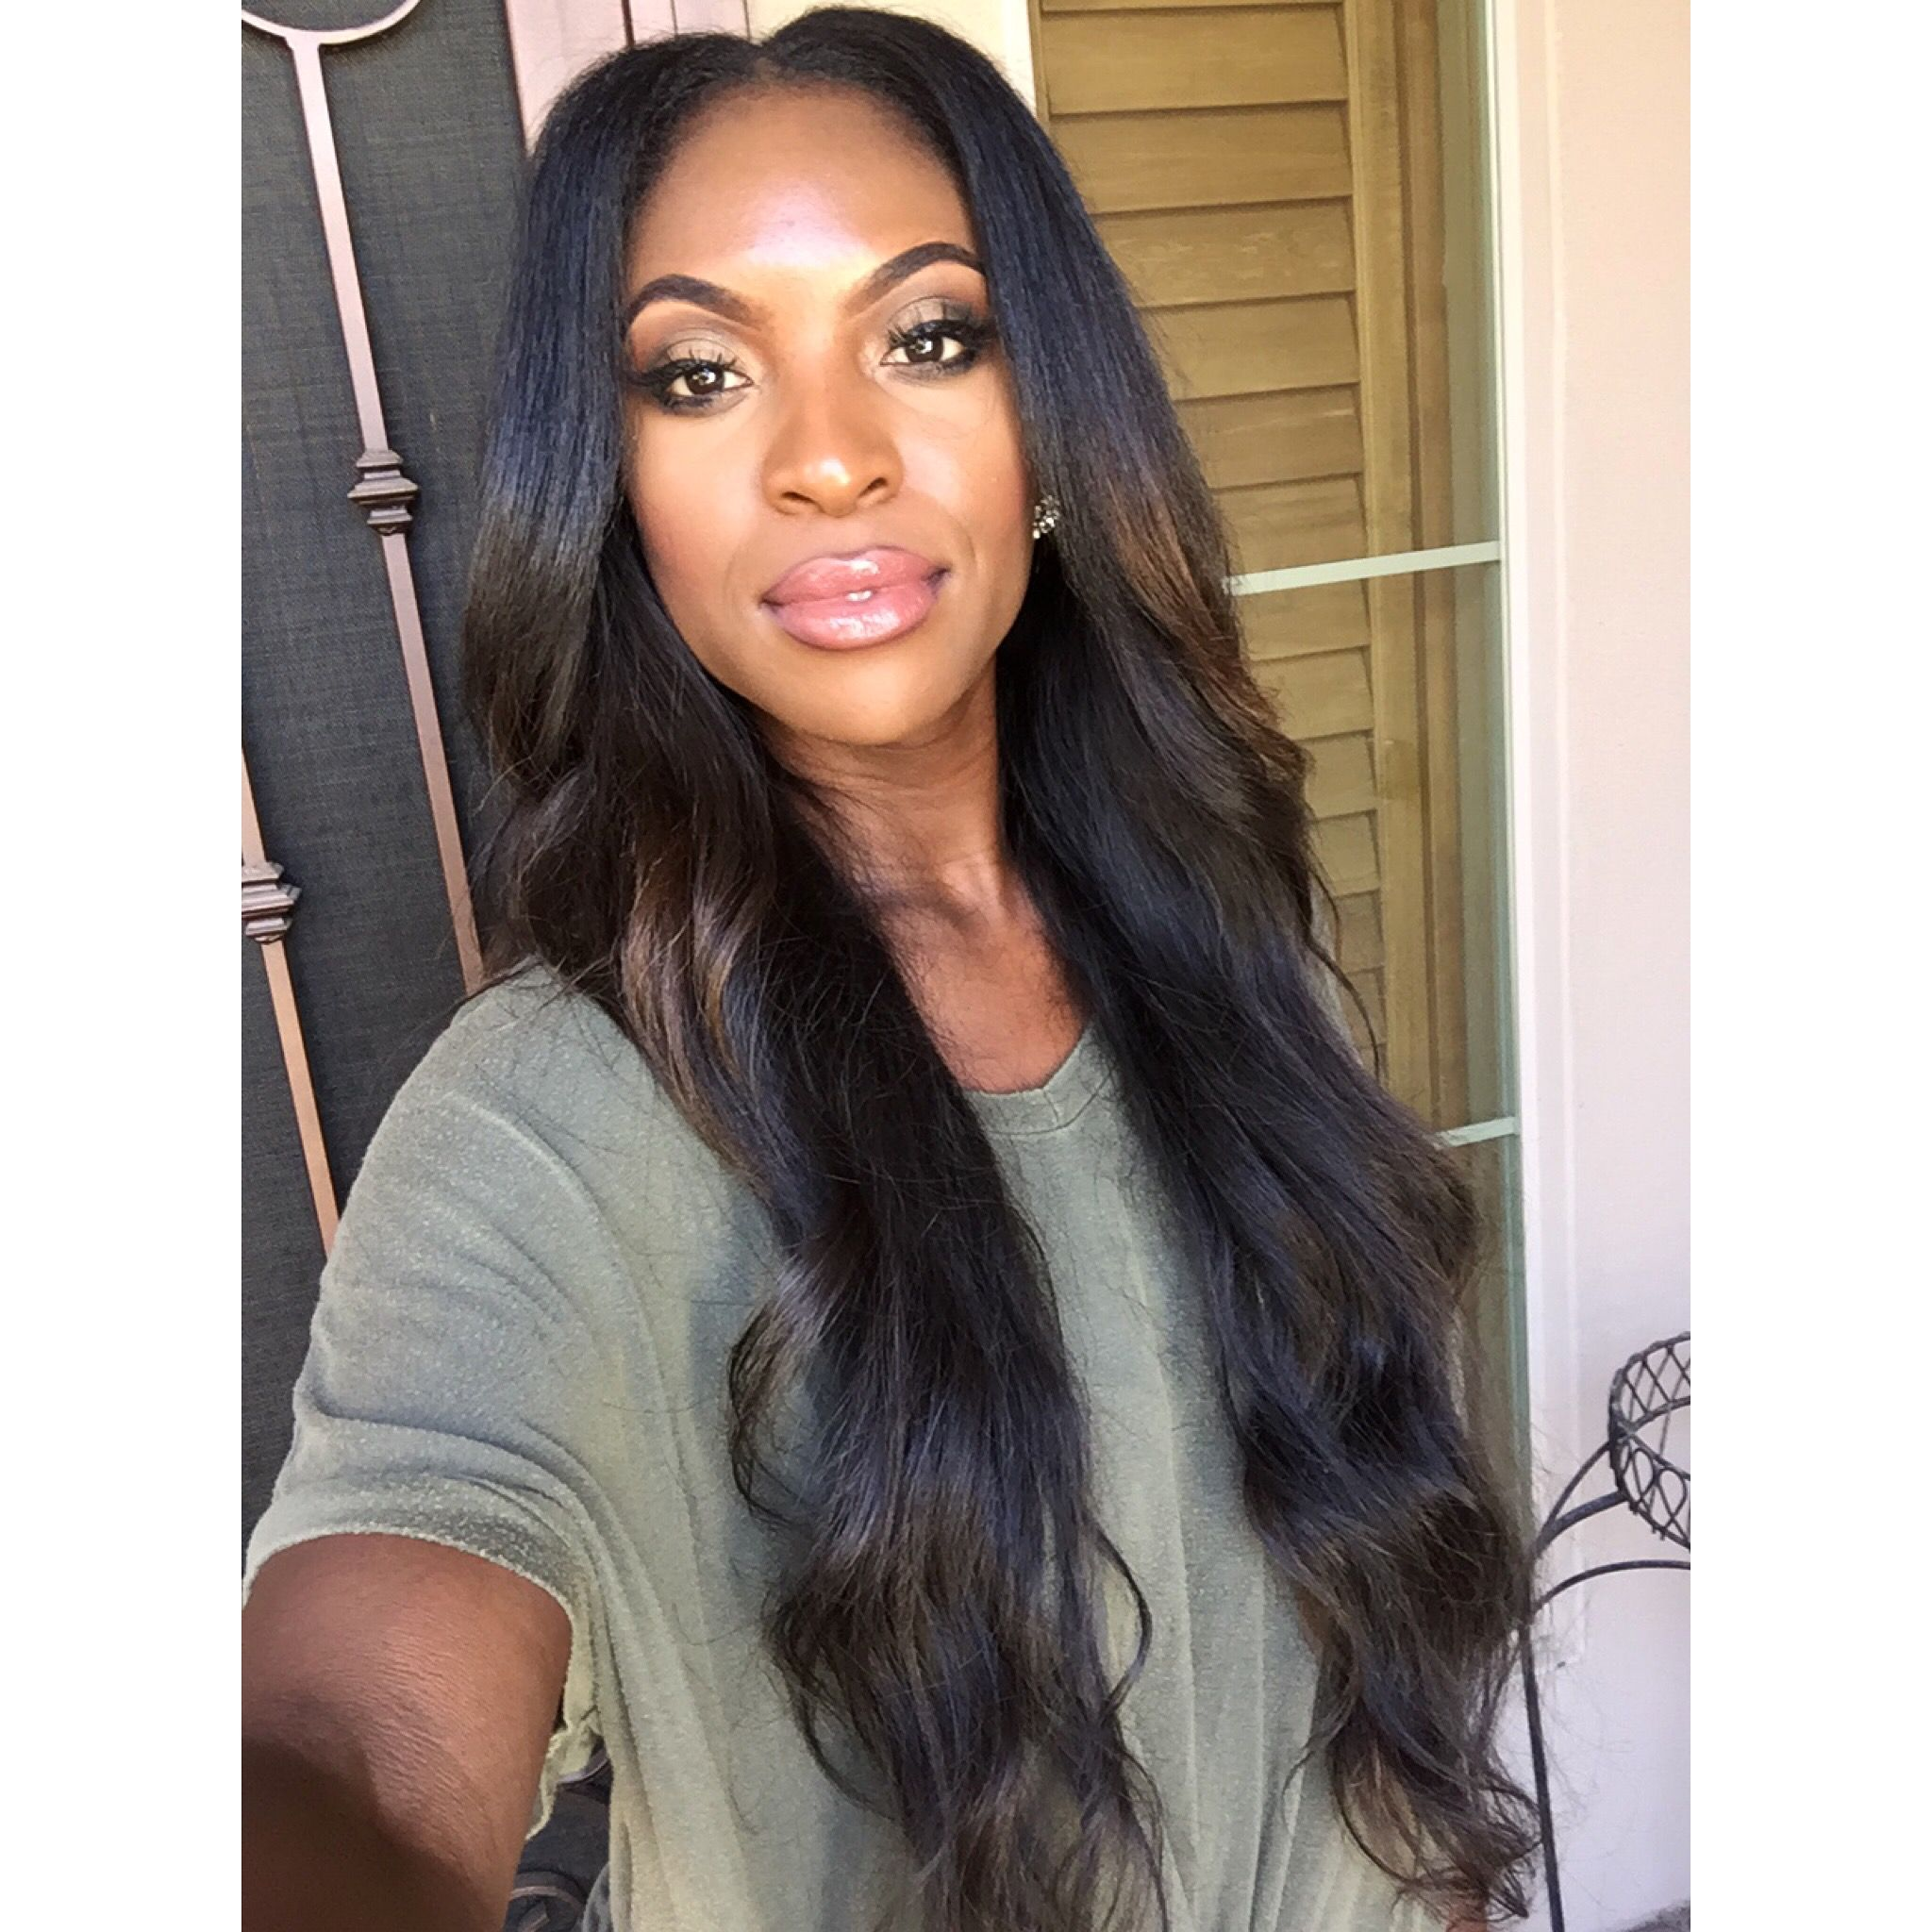 hairstyle for black women. #longextensions #balayage #ombre